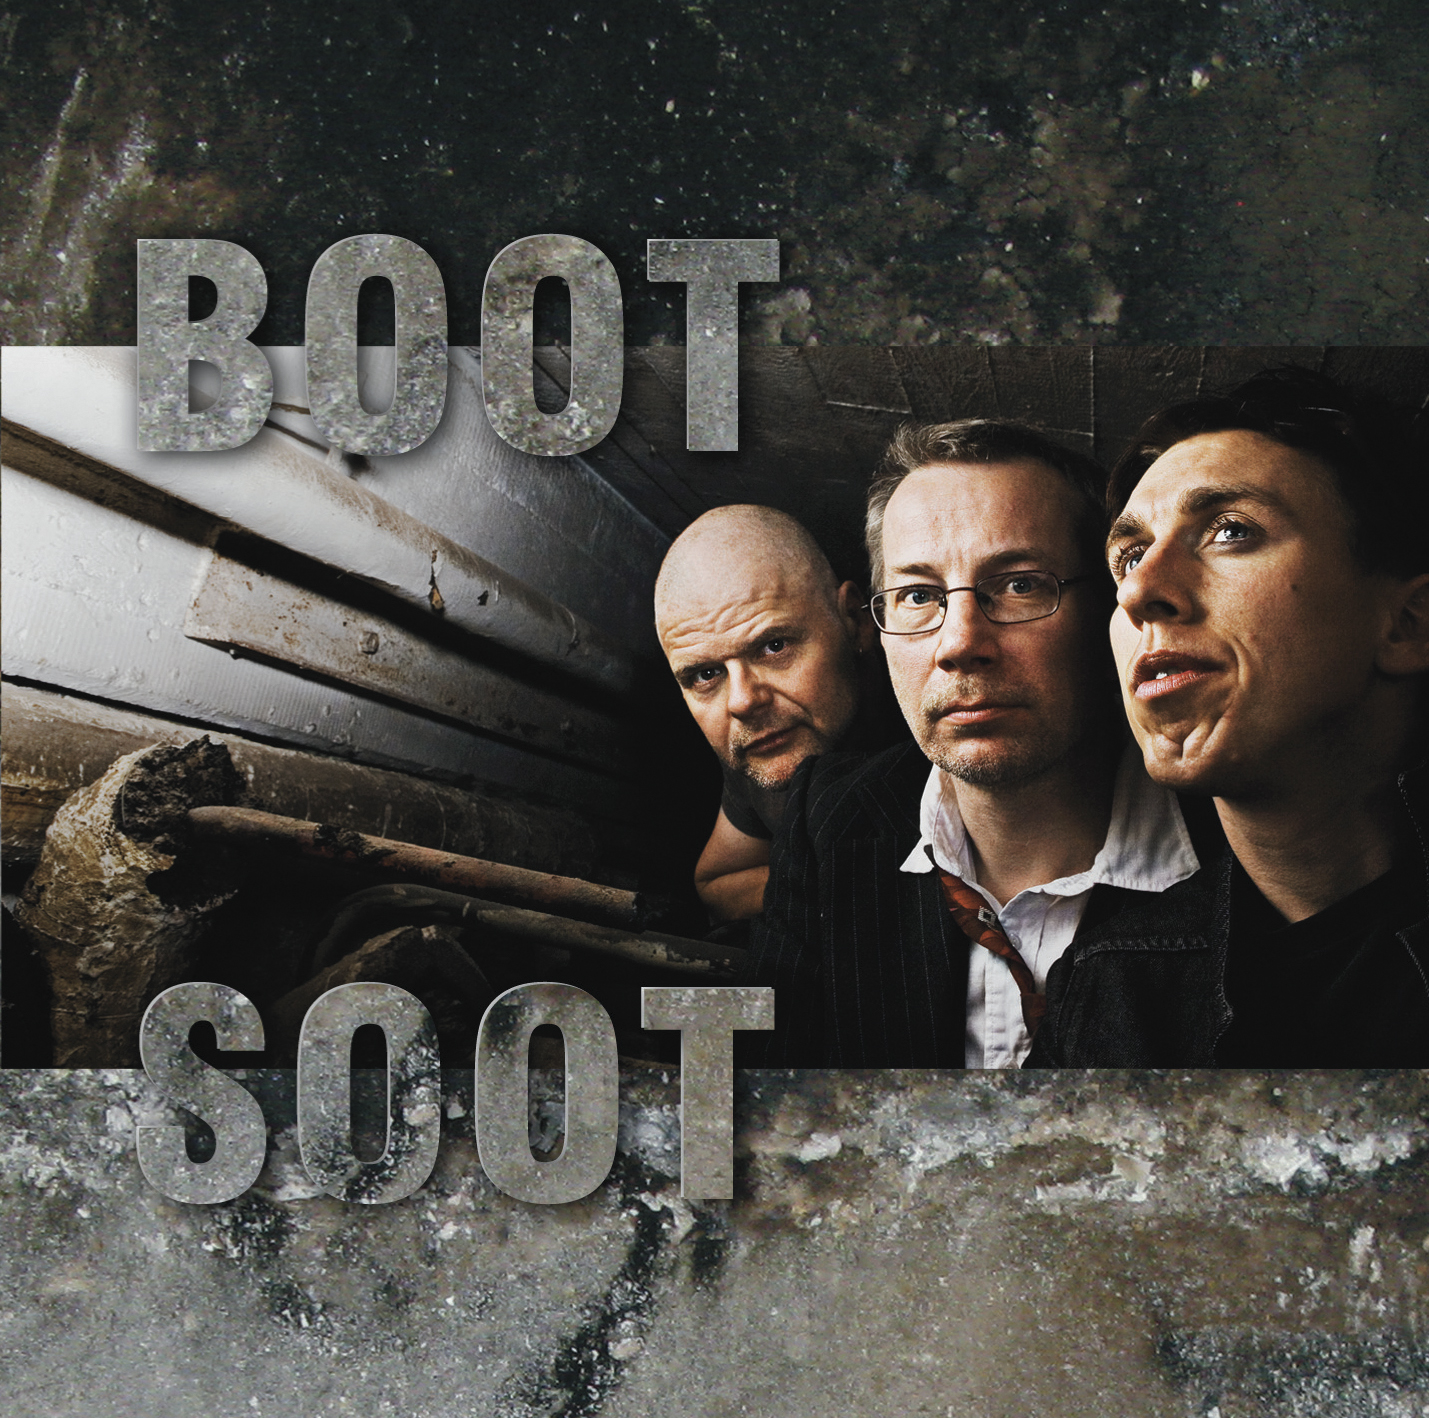 Boot - Soot